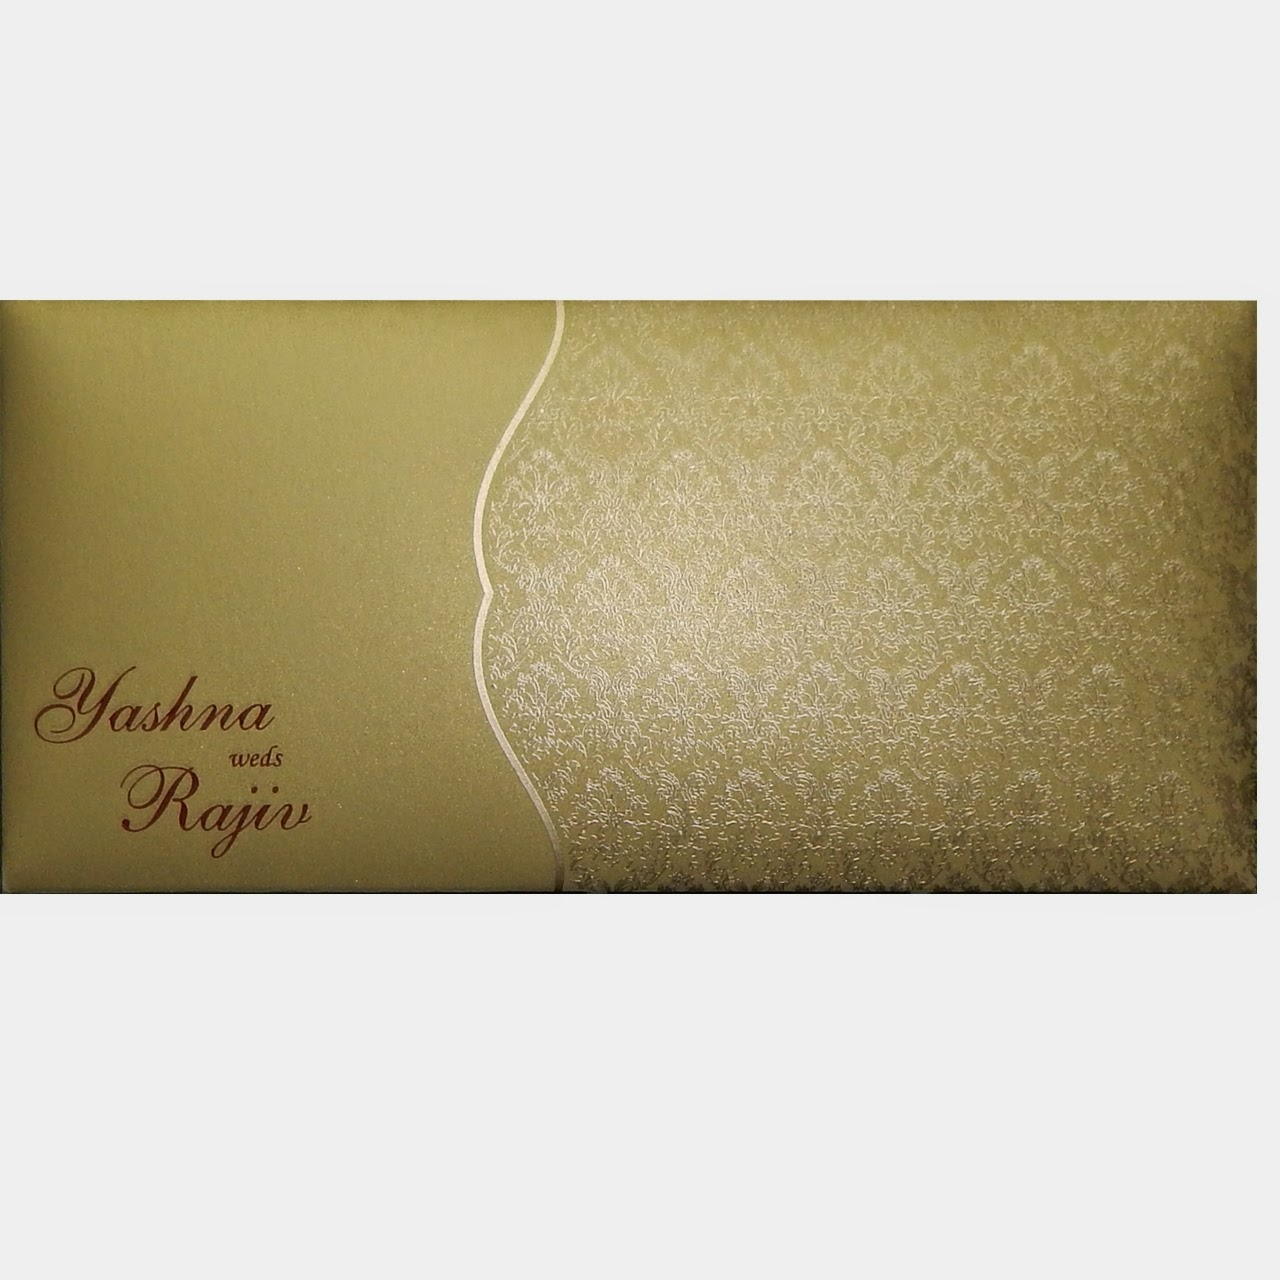 order indian wedding cards online - Indian Wedding Cards Online